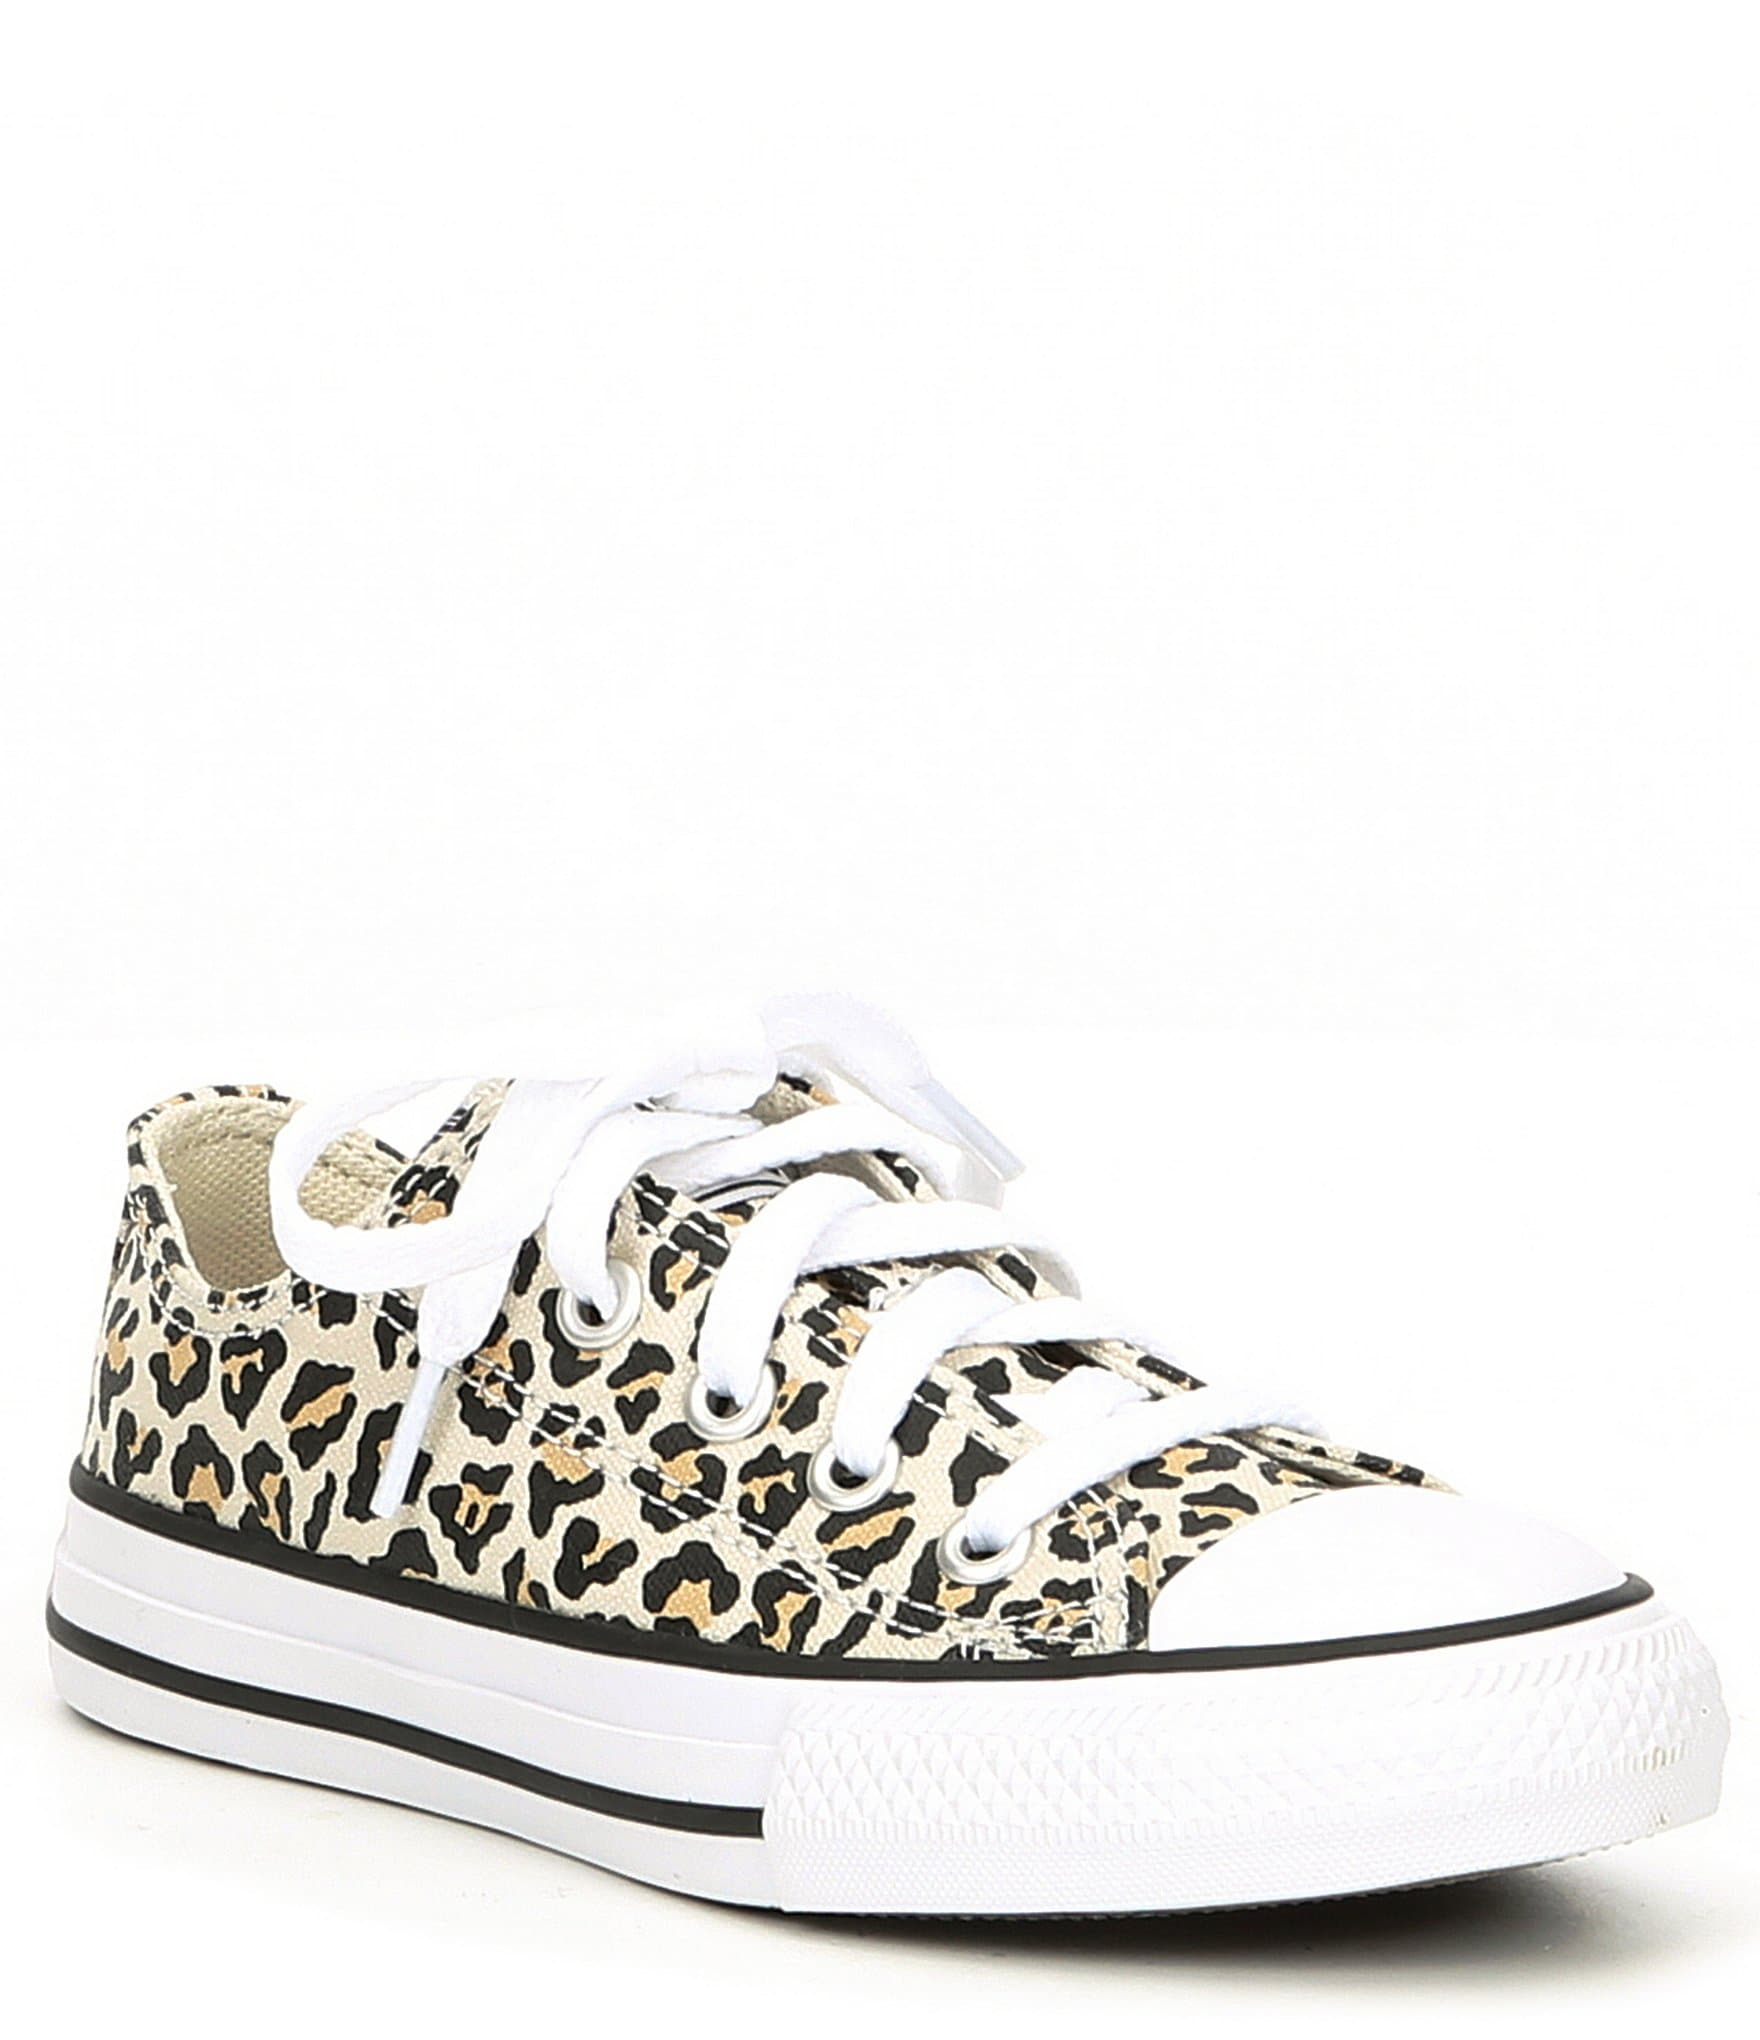 Converse Girls' Chuck Taylor All Star Leopard Print Sneakers (Toddler) |  Dillard's